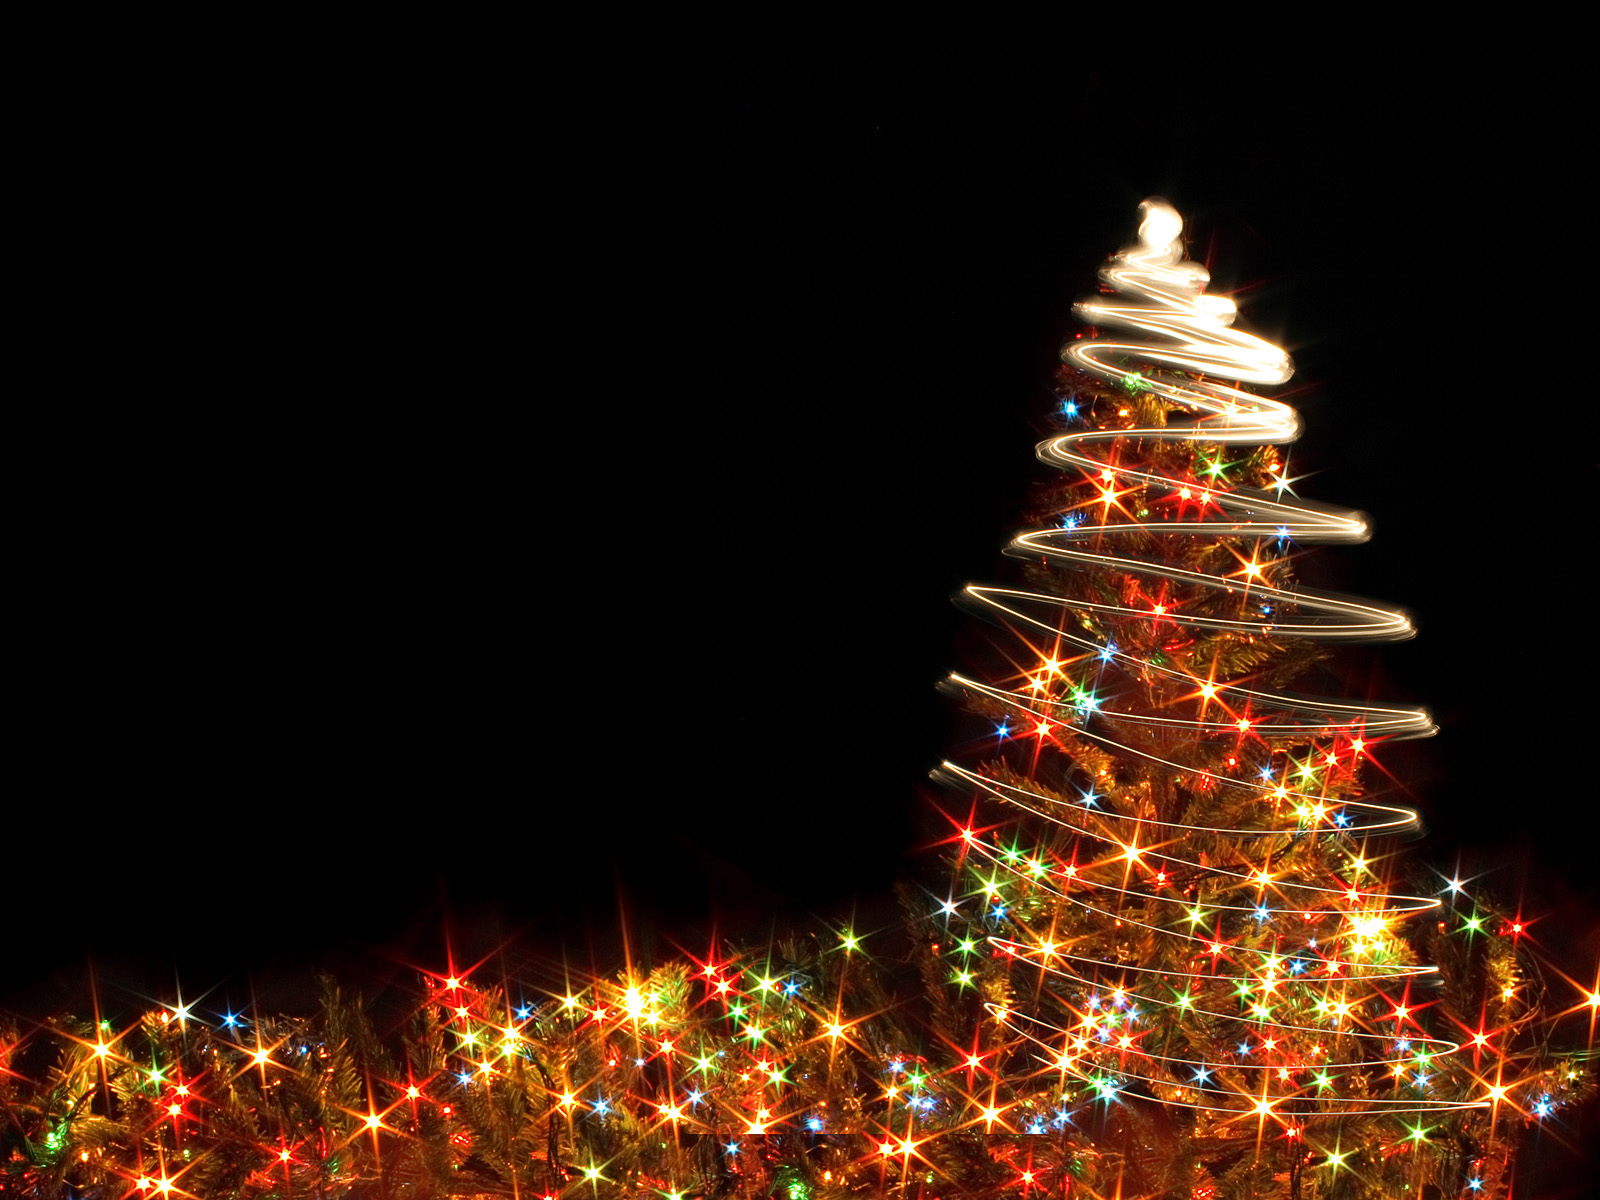 Animated Christmas Lights Wallpaper - WallpaperSafari